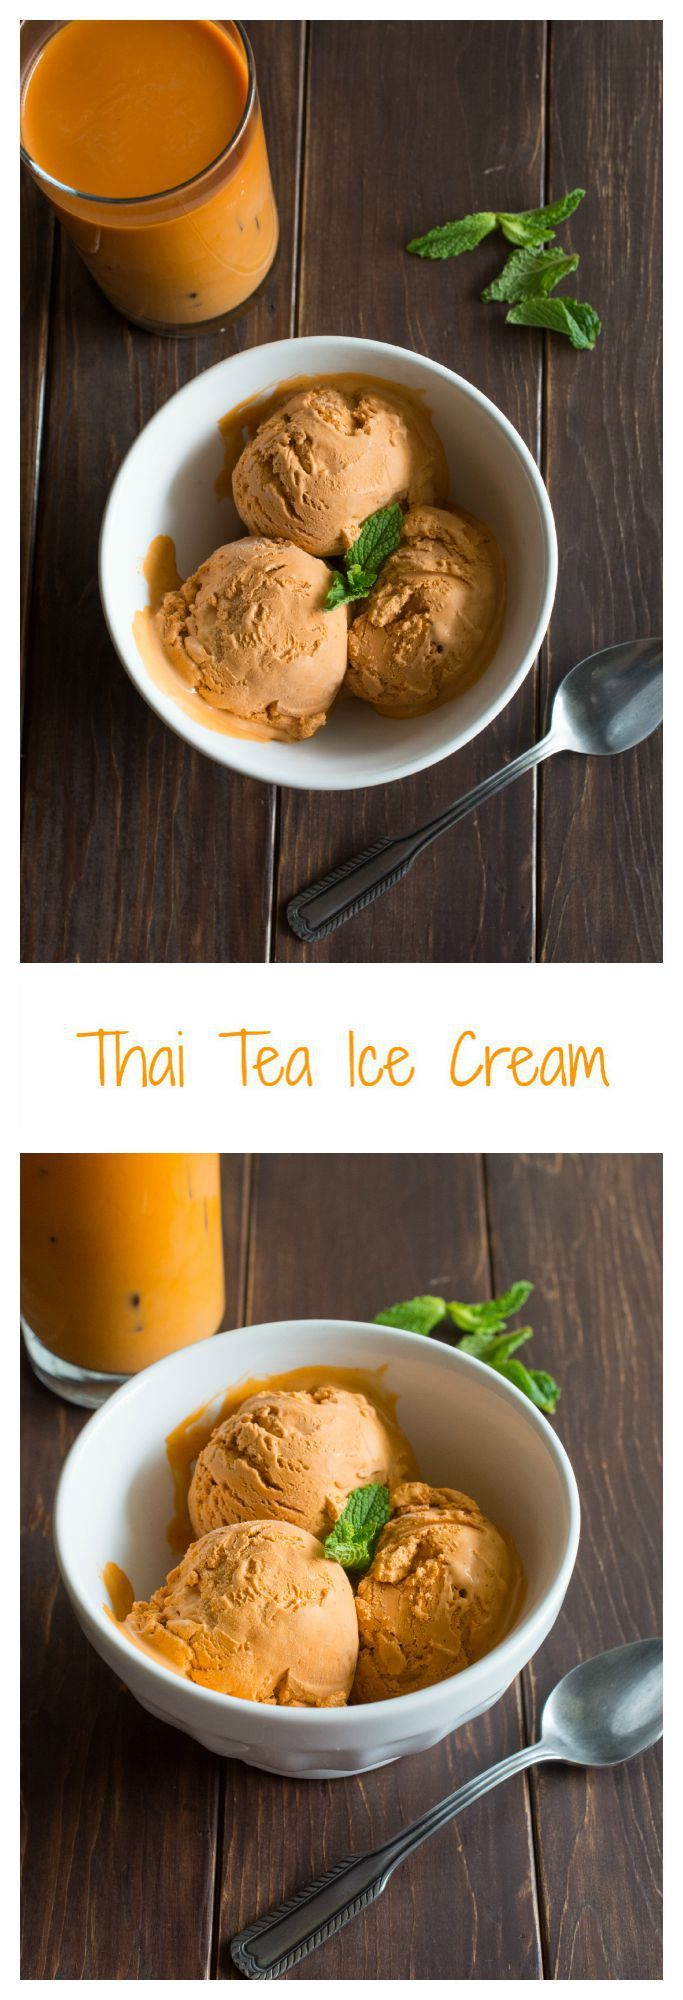 Silky, creamy and rich Thai Tea Ice Cream. The perfect dessert after a spicy Thai meal...or ANY meal!